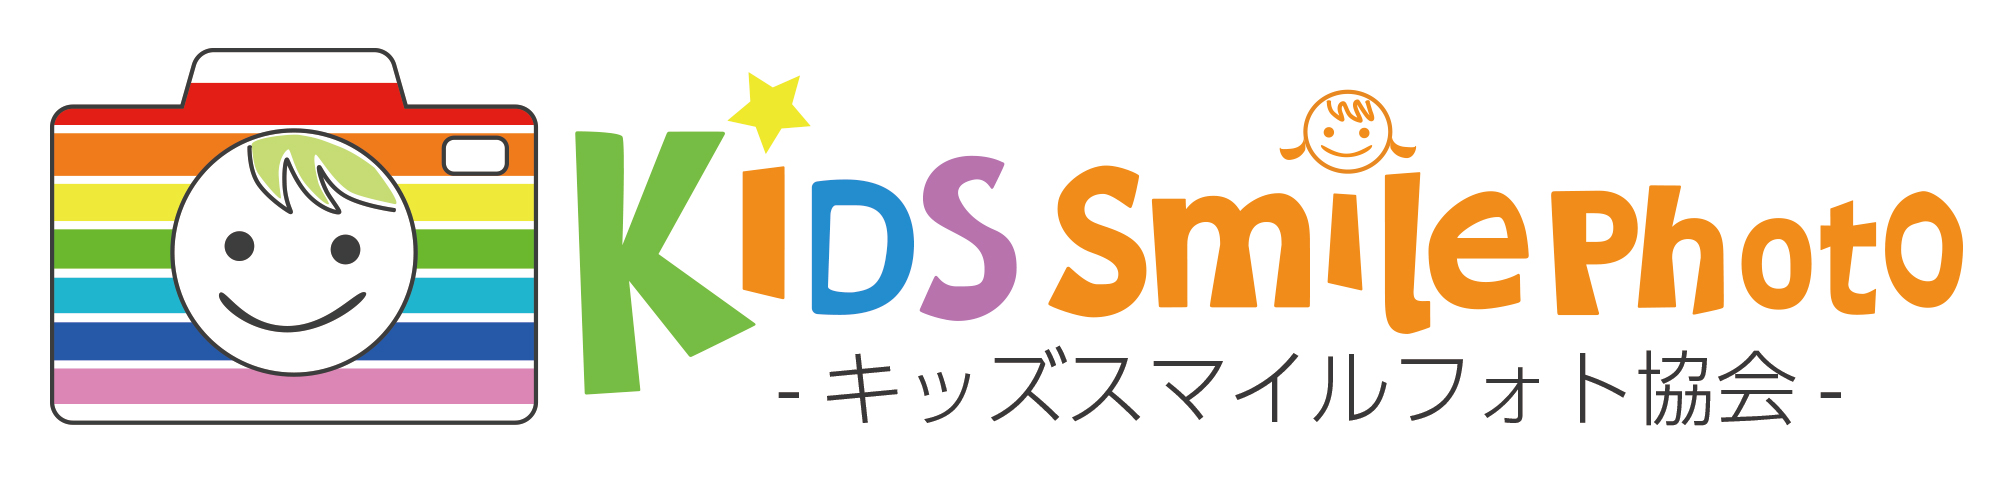 kids_smile_photo_logo02